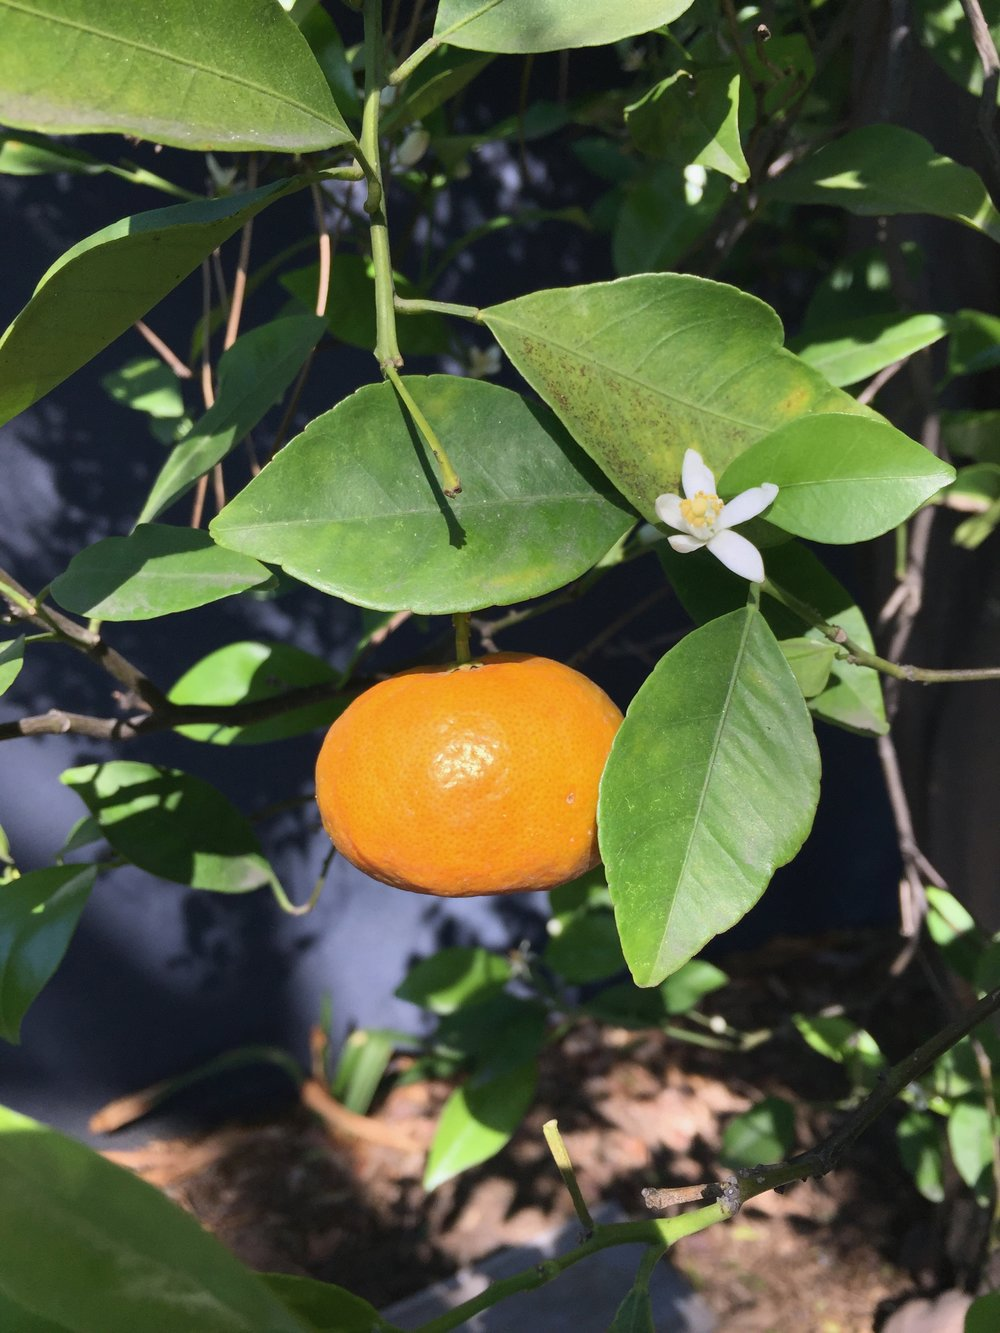 Almost ready for our first ever harvest of mandarins and the tree is flush with heavenly perfumed blossoms.